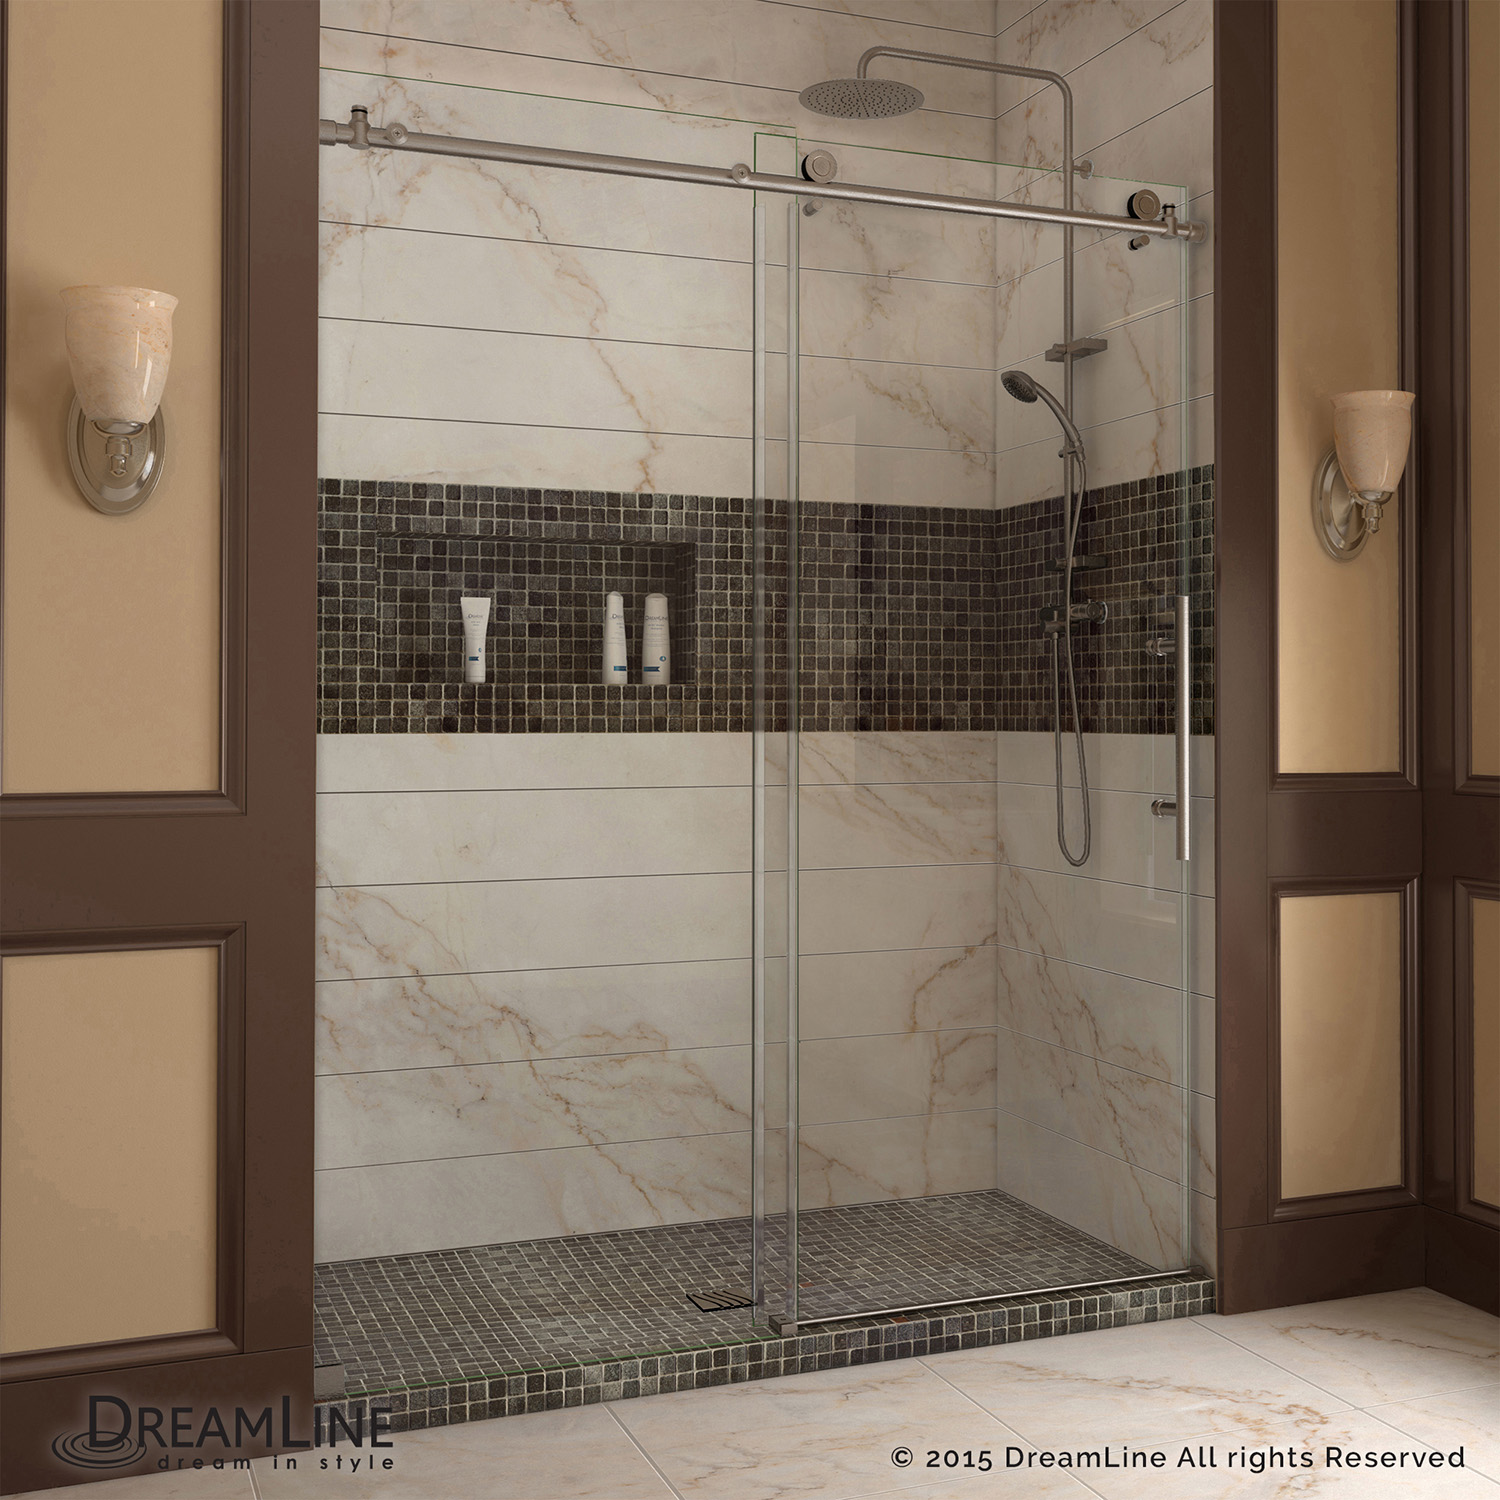 Dreamline Shdr 61487610 07 Enigma X 44 48 Sliding Shower Door Ebay